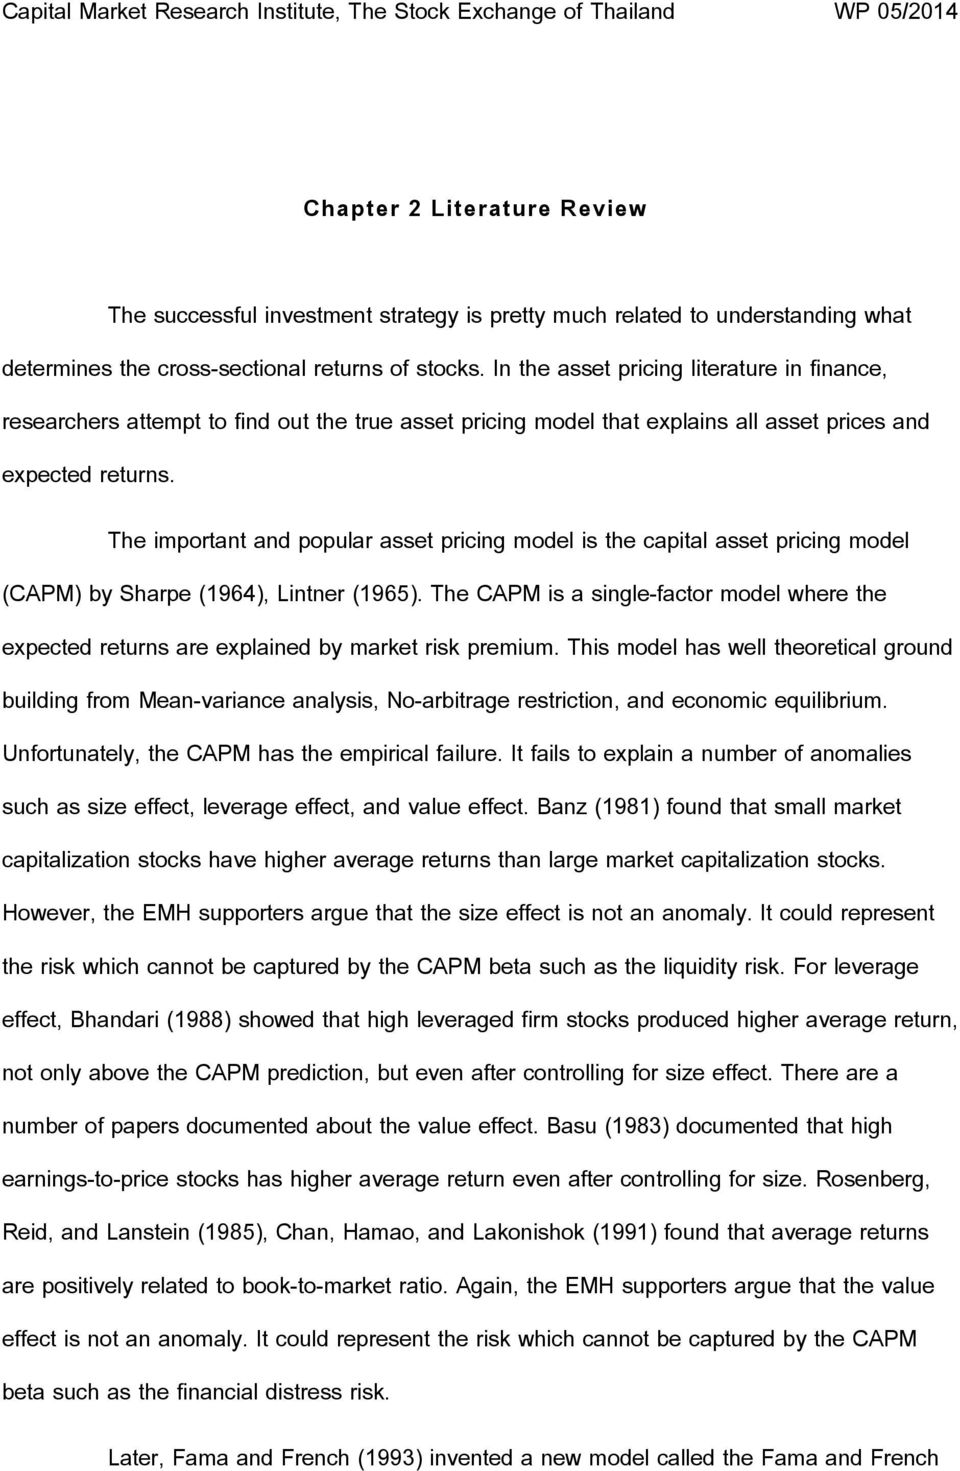 The important and popular asset pricing model is the capital asset pricing model (CAPM) by Sharpe (1964), Lintner (1965).